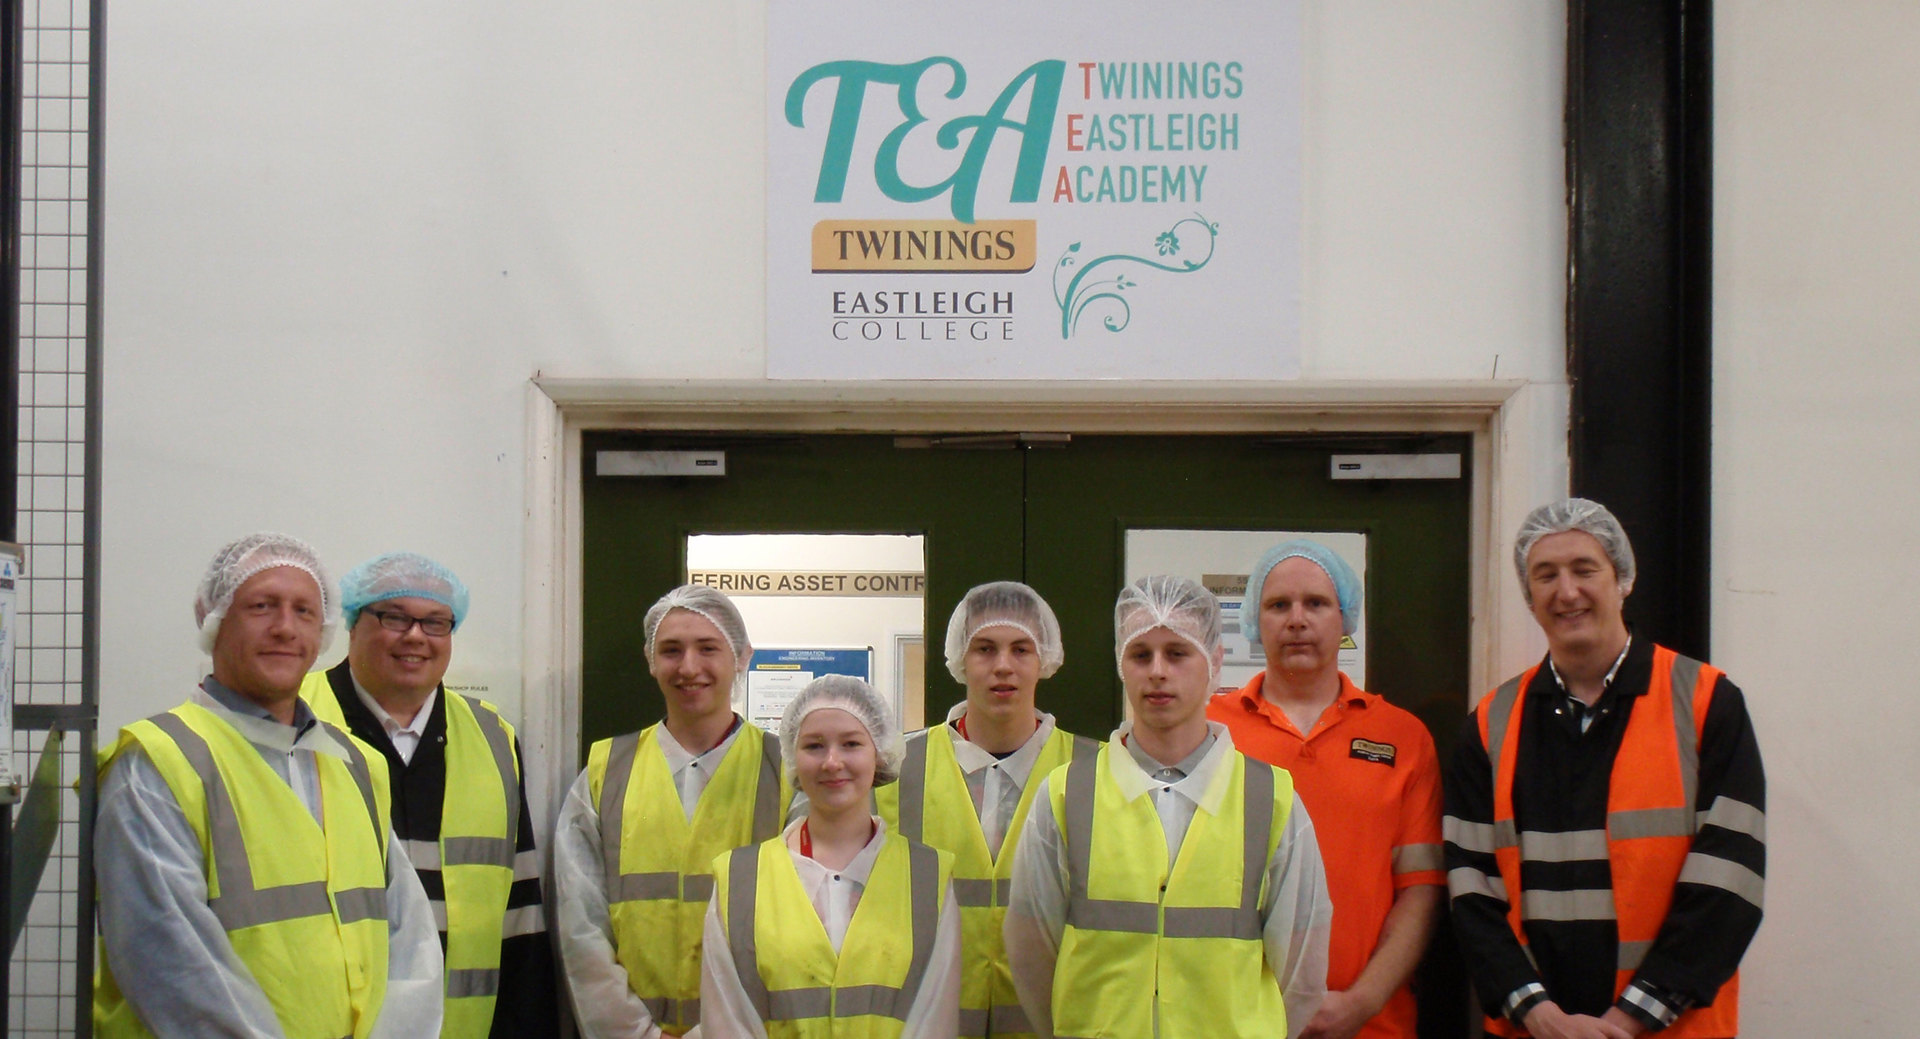 Partnership leads to success at Twinings